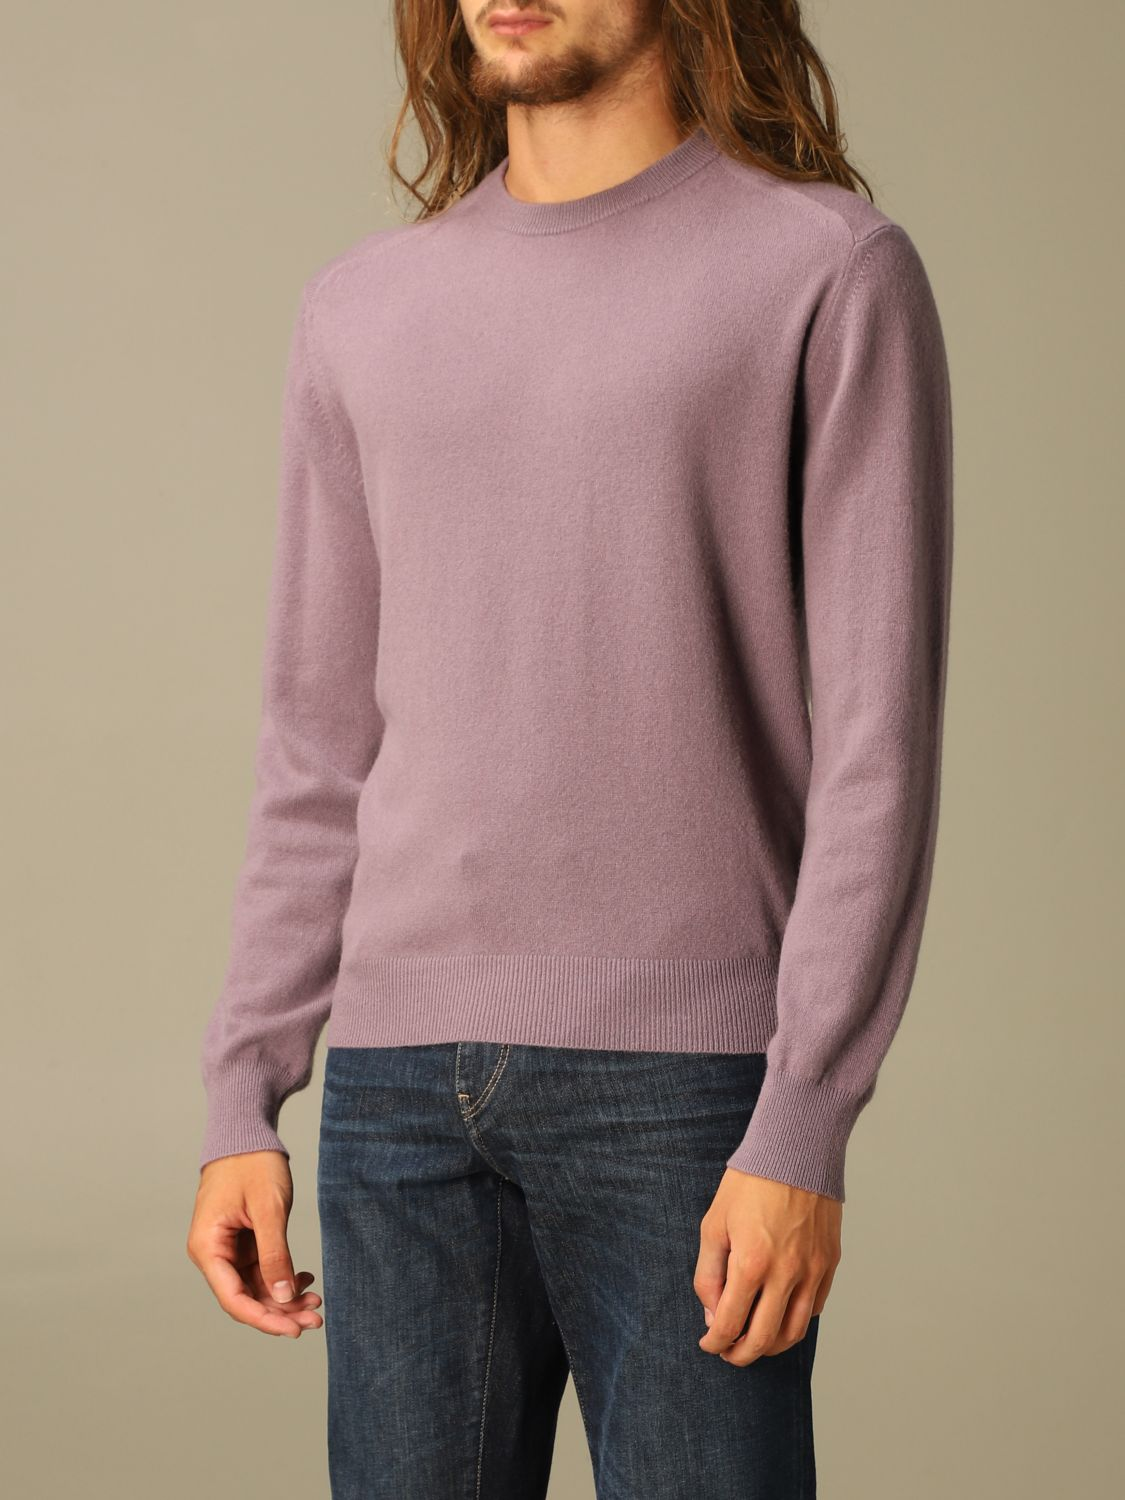 Sweater Z Zegna: Z Zegna cashmere sweater with long sleeves wisteria 3